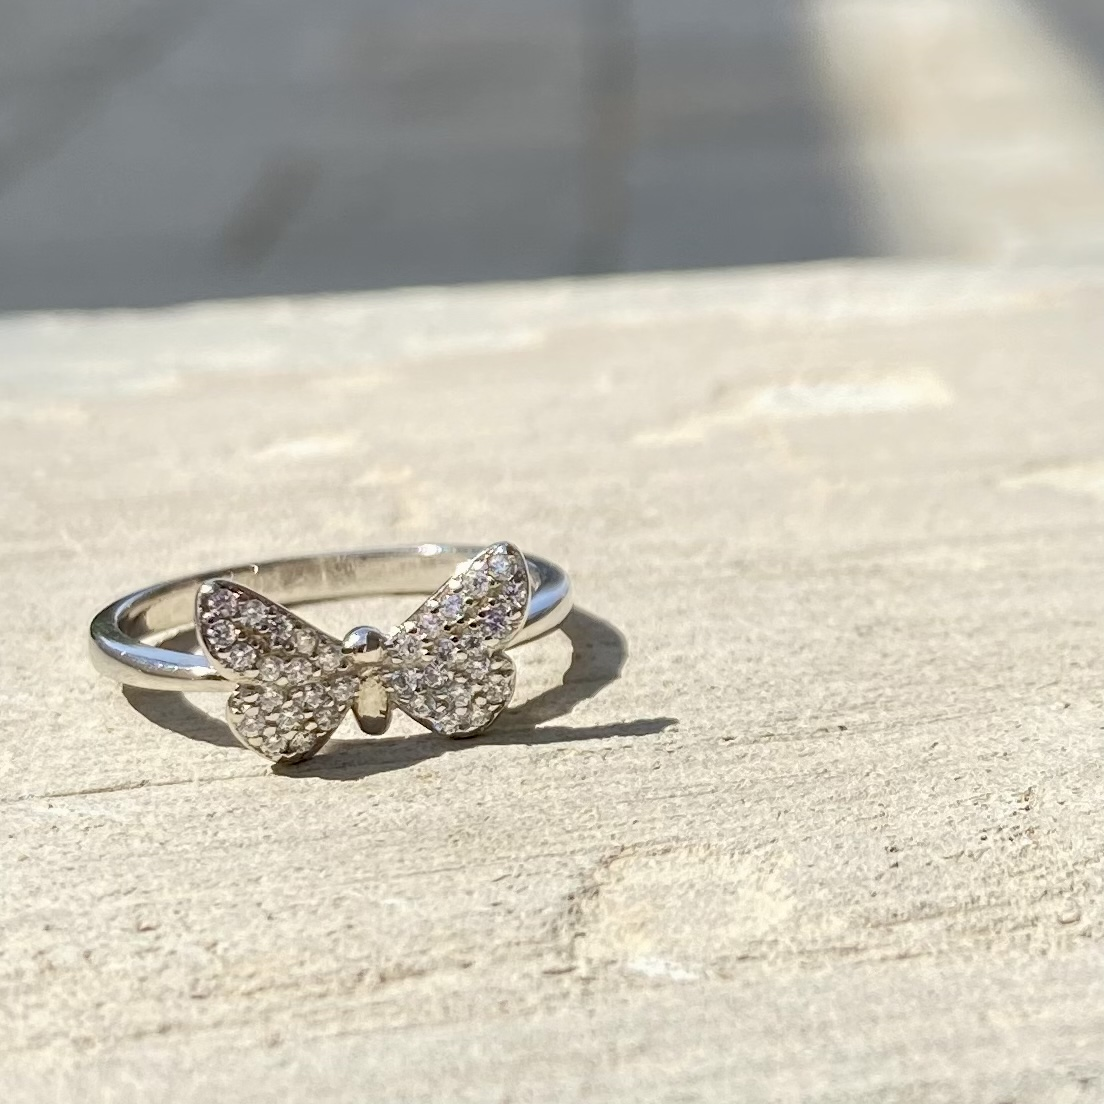 The Miracle Garden ring